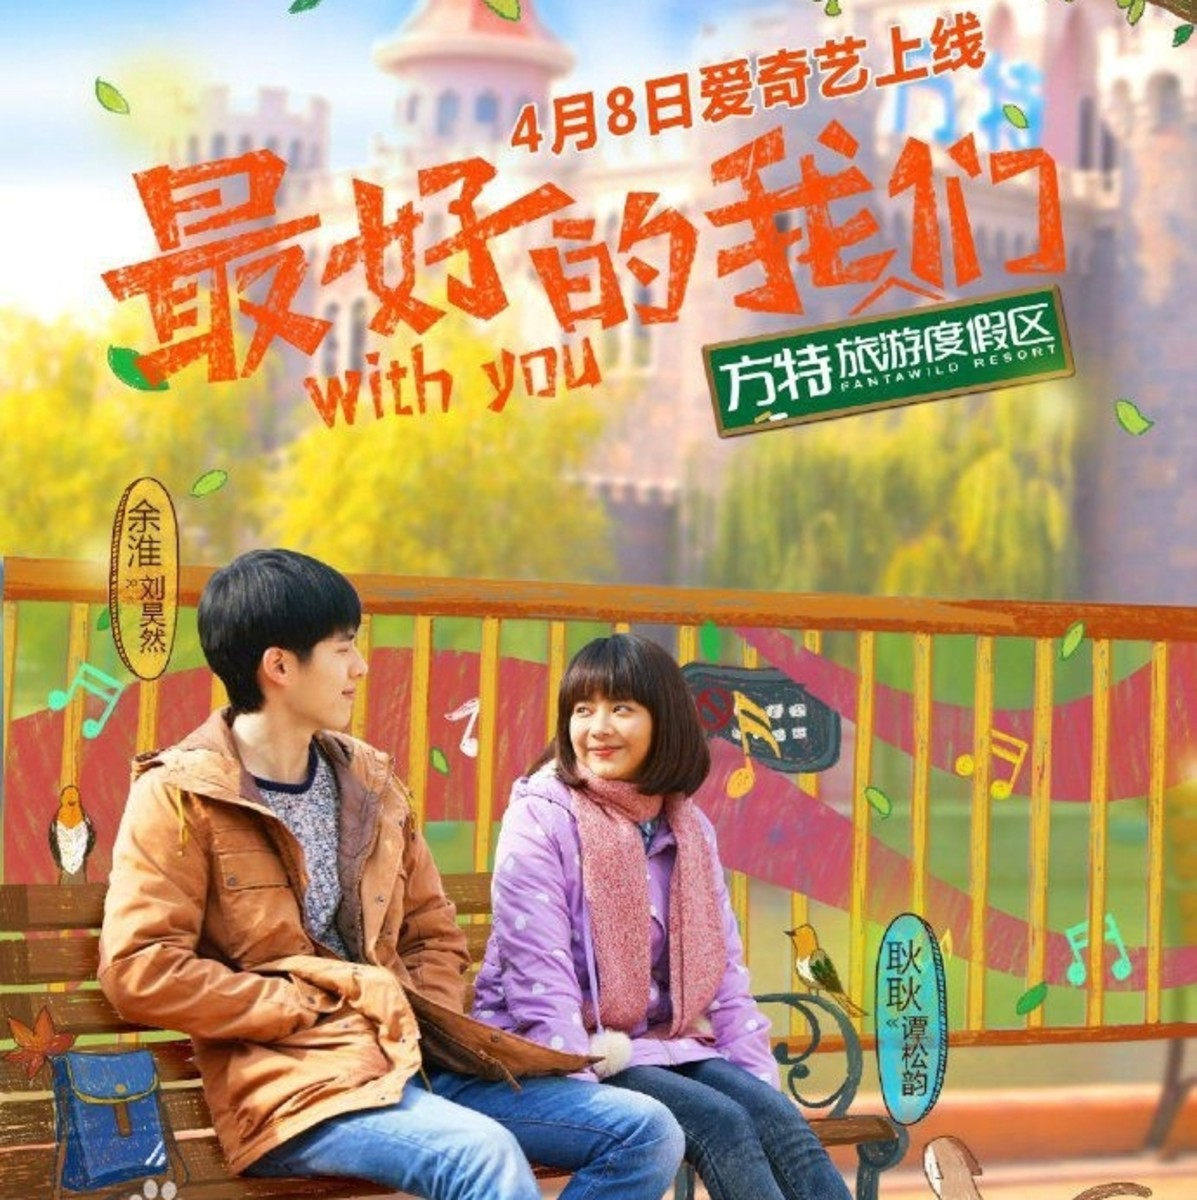 With You | Top 9 Chinese Youth Romantic Dramas You Can't Miss to Watch